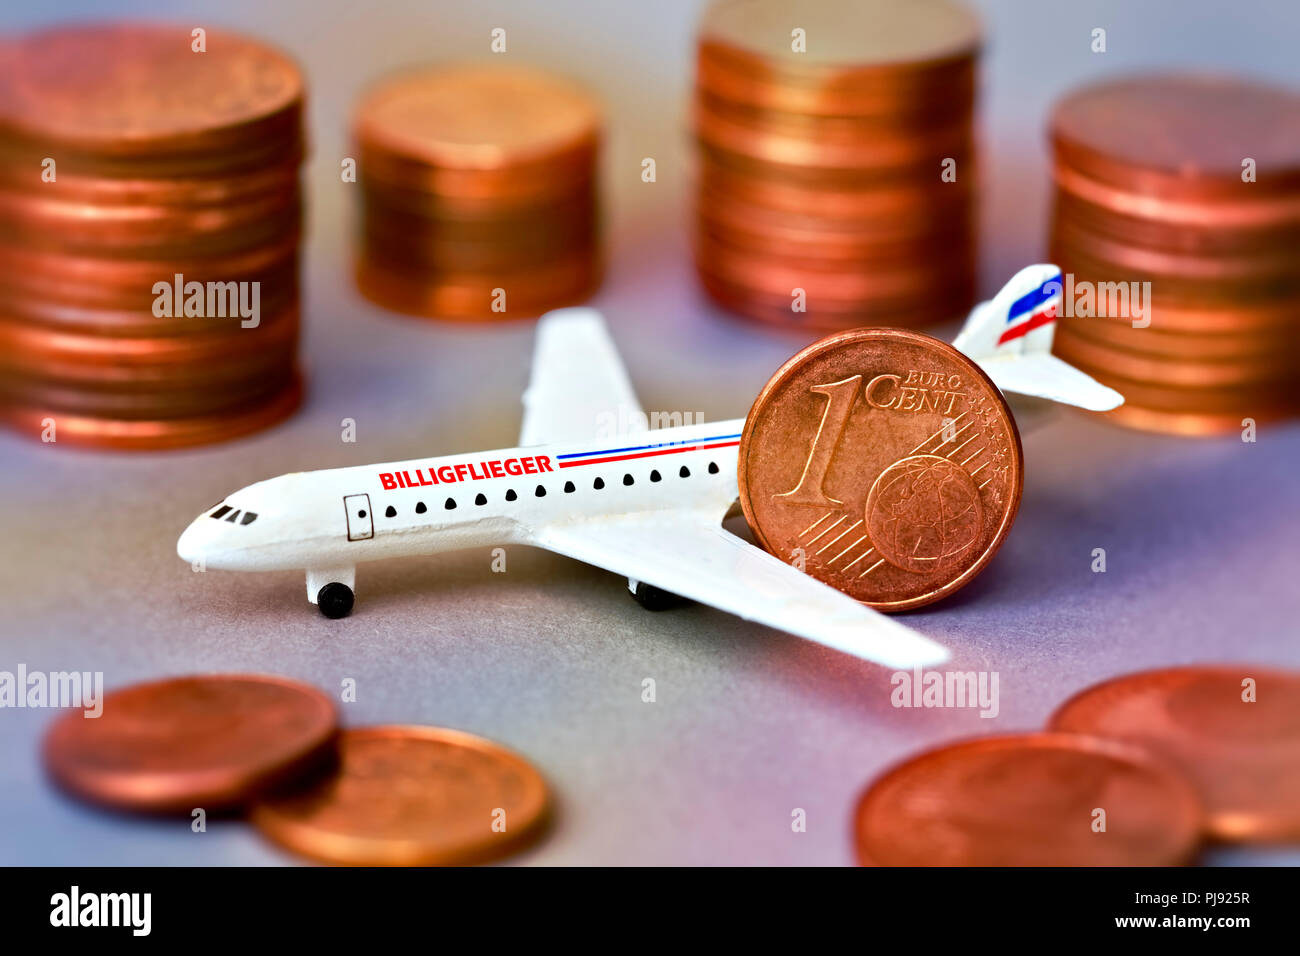 Miniature airplane with label Cheap airman and cent coins, Miniaturflugzeug mit Aufschrift Billigflieger und Centmünzen Stock Photo